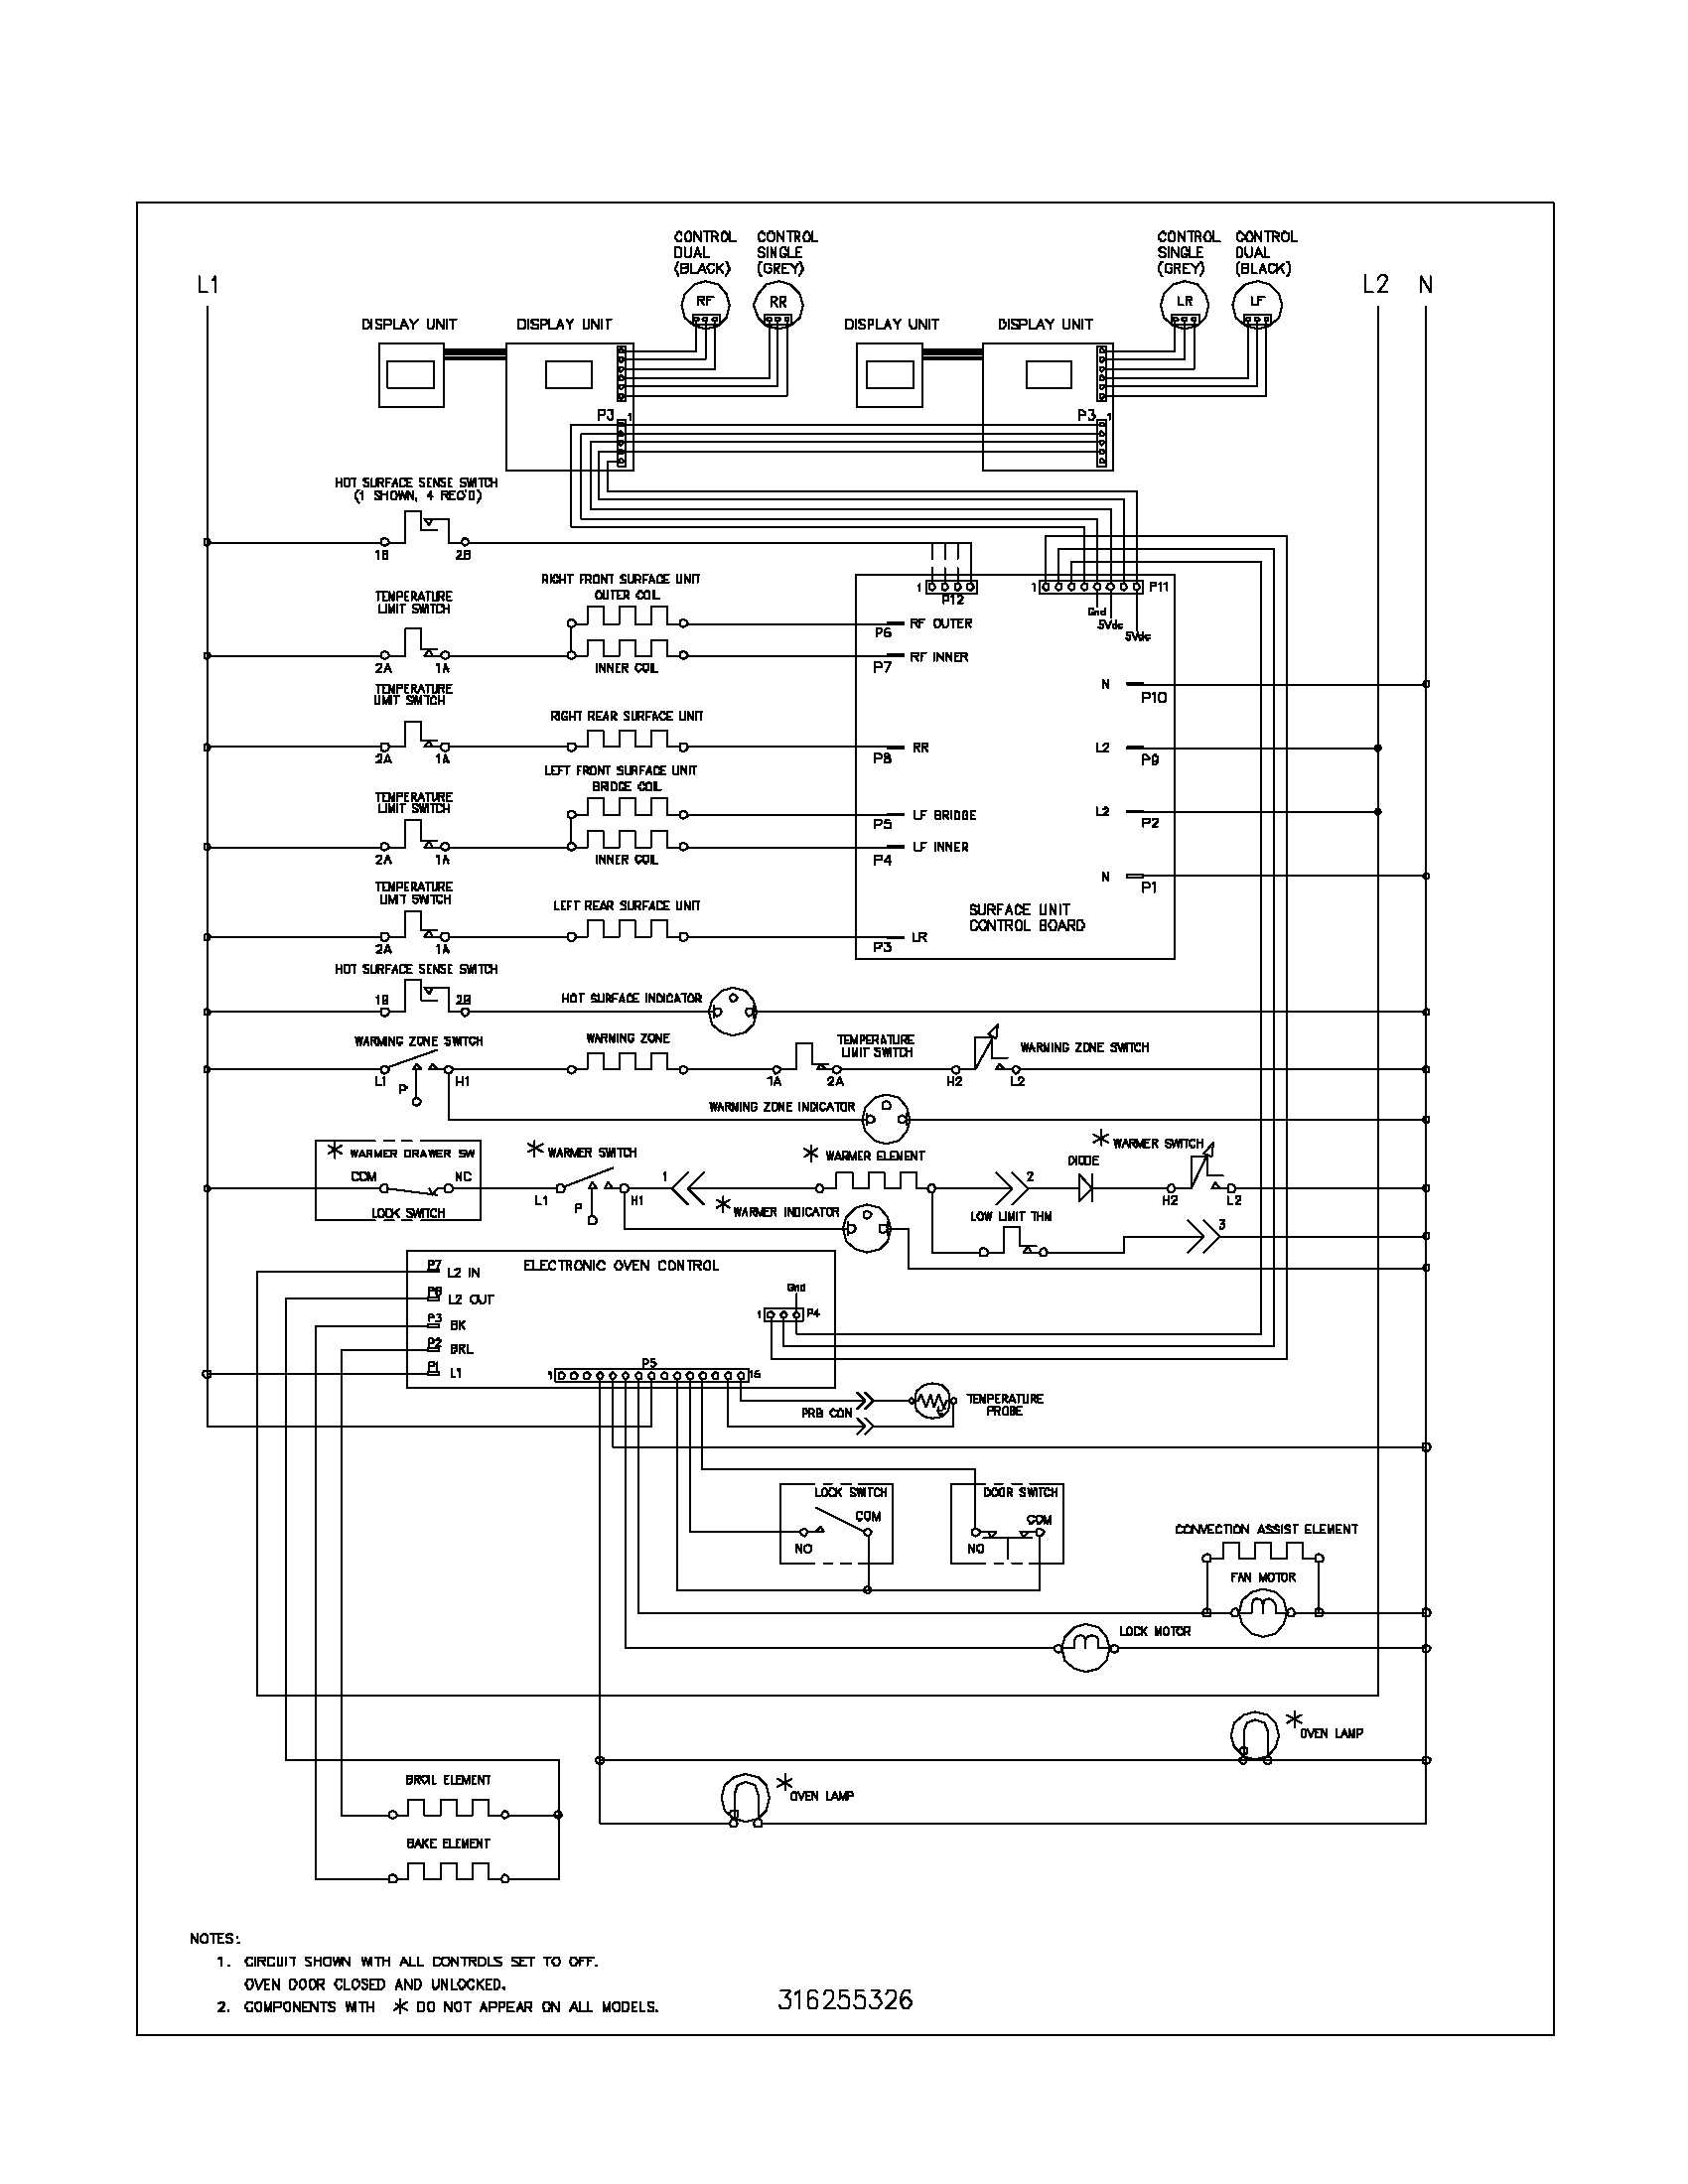 Stove element wiring diagram wiring diagram manual frigidaire plef398ccc electric range timer stove clocks and stove element wiring diagram stove heating element wiring swarovskicordoba Gallery